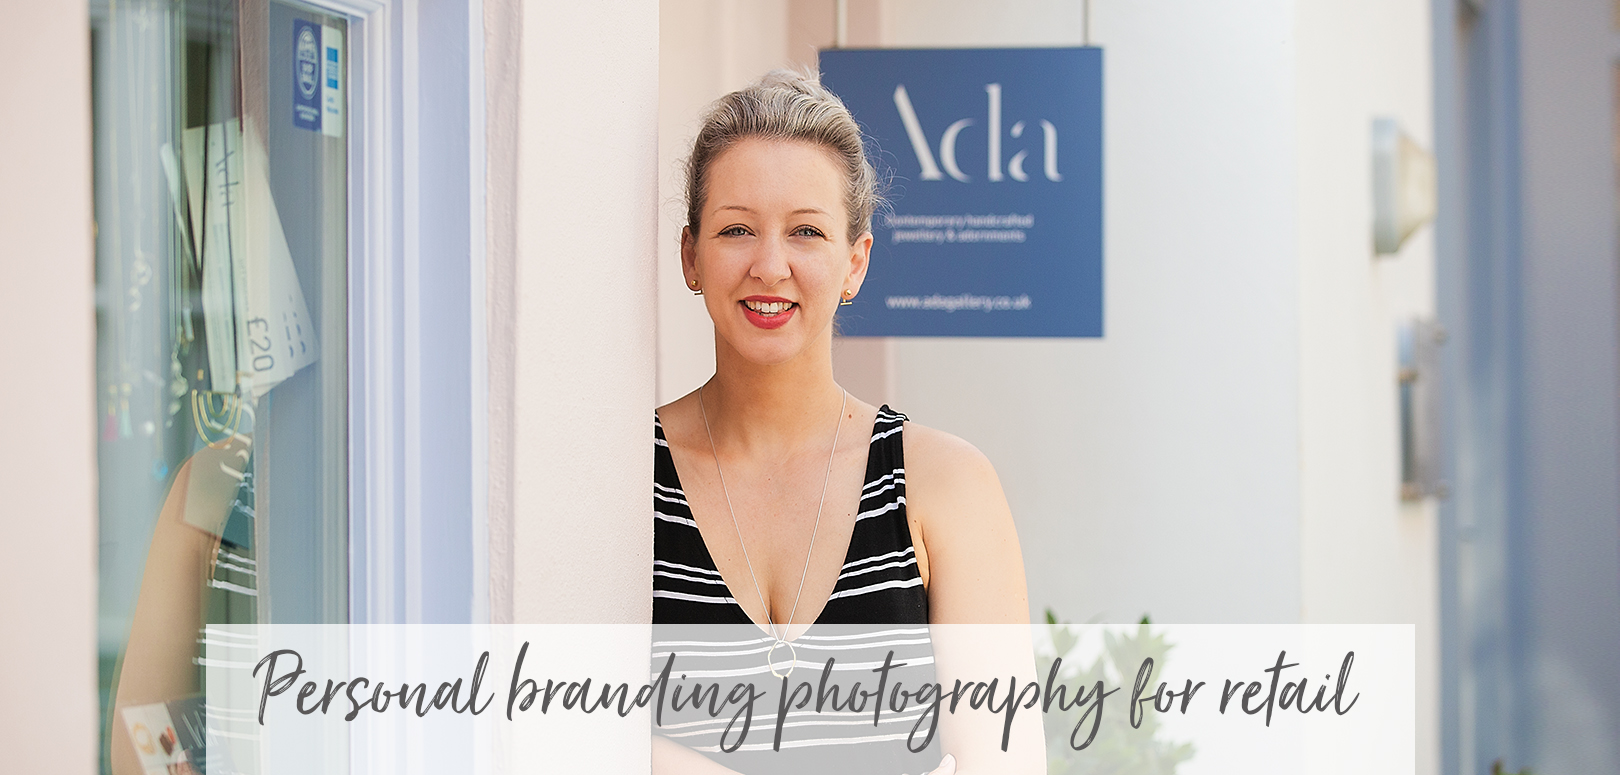 Personal branding photography for retail